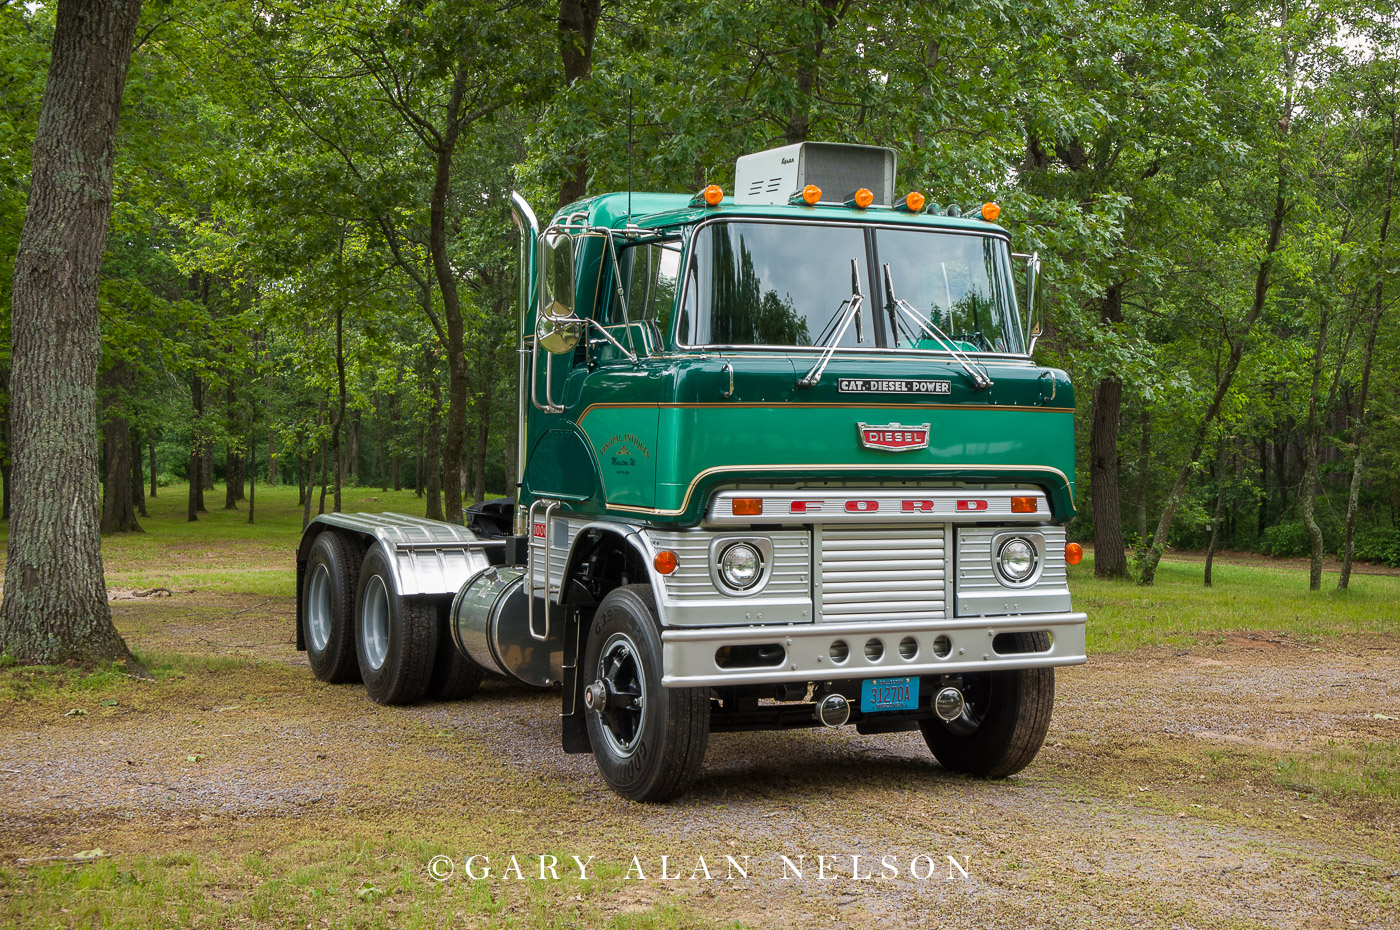 VT-10-13-FO 1966 Ford H Model with a 1673 240-hp Cat engine